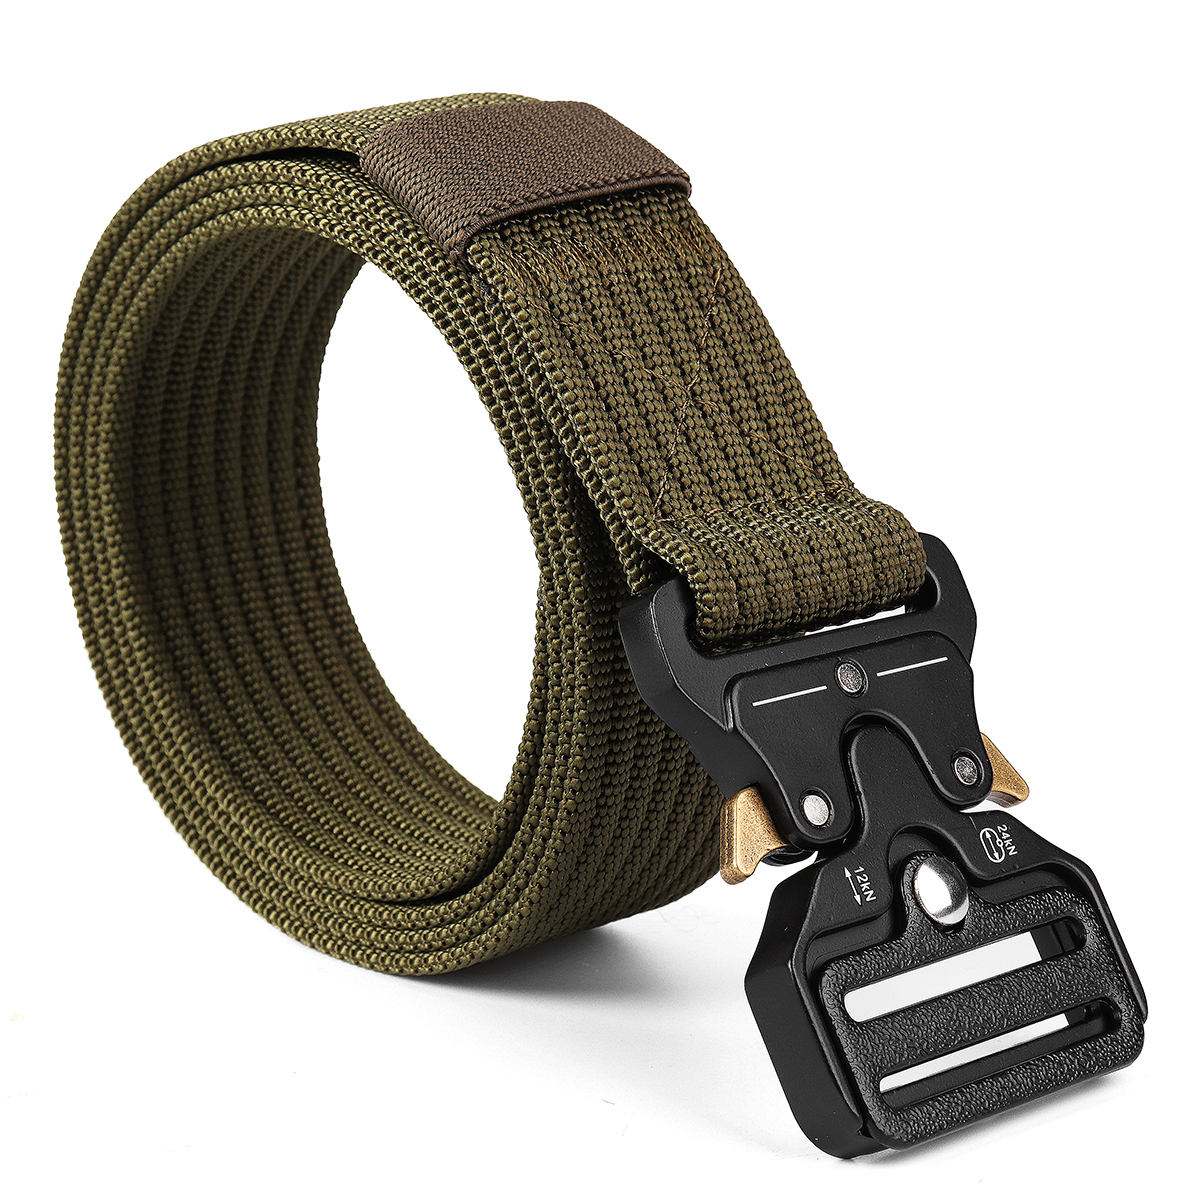 Best Survival Belt 2020